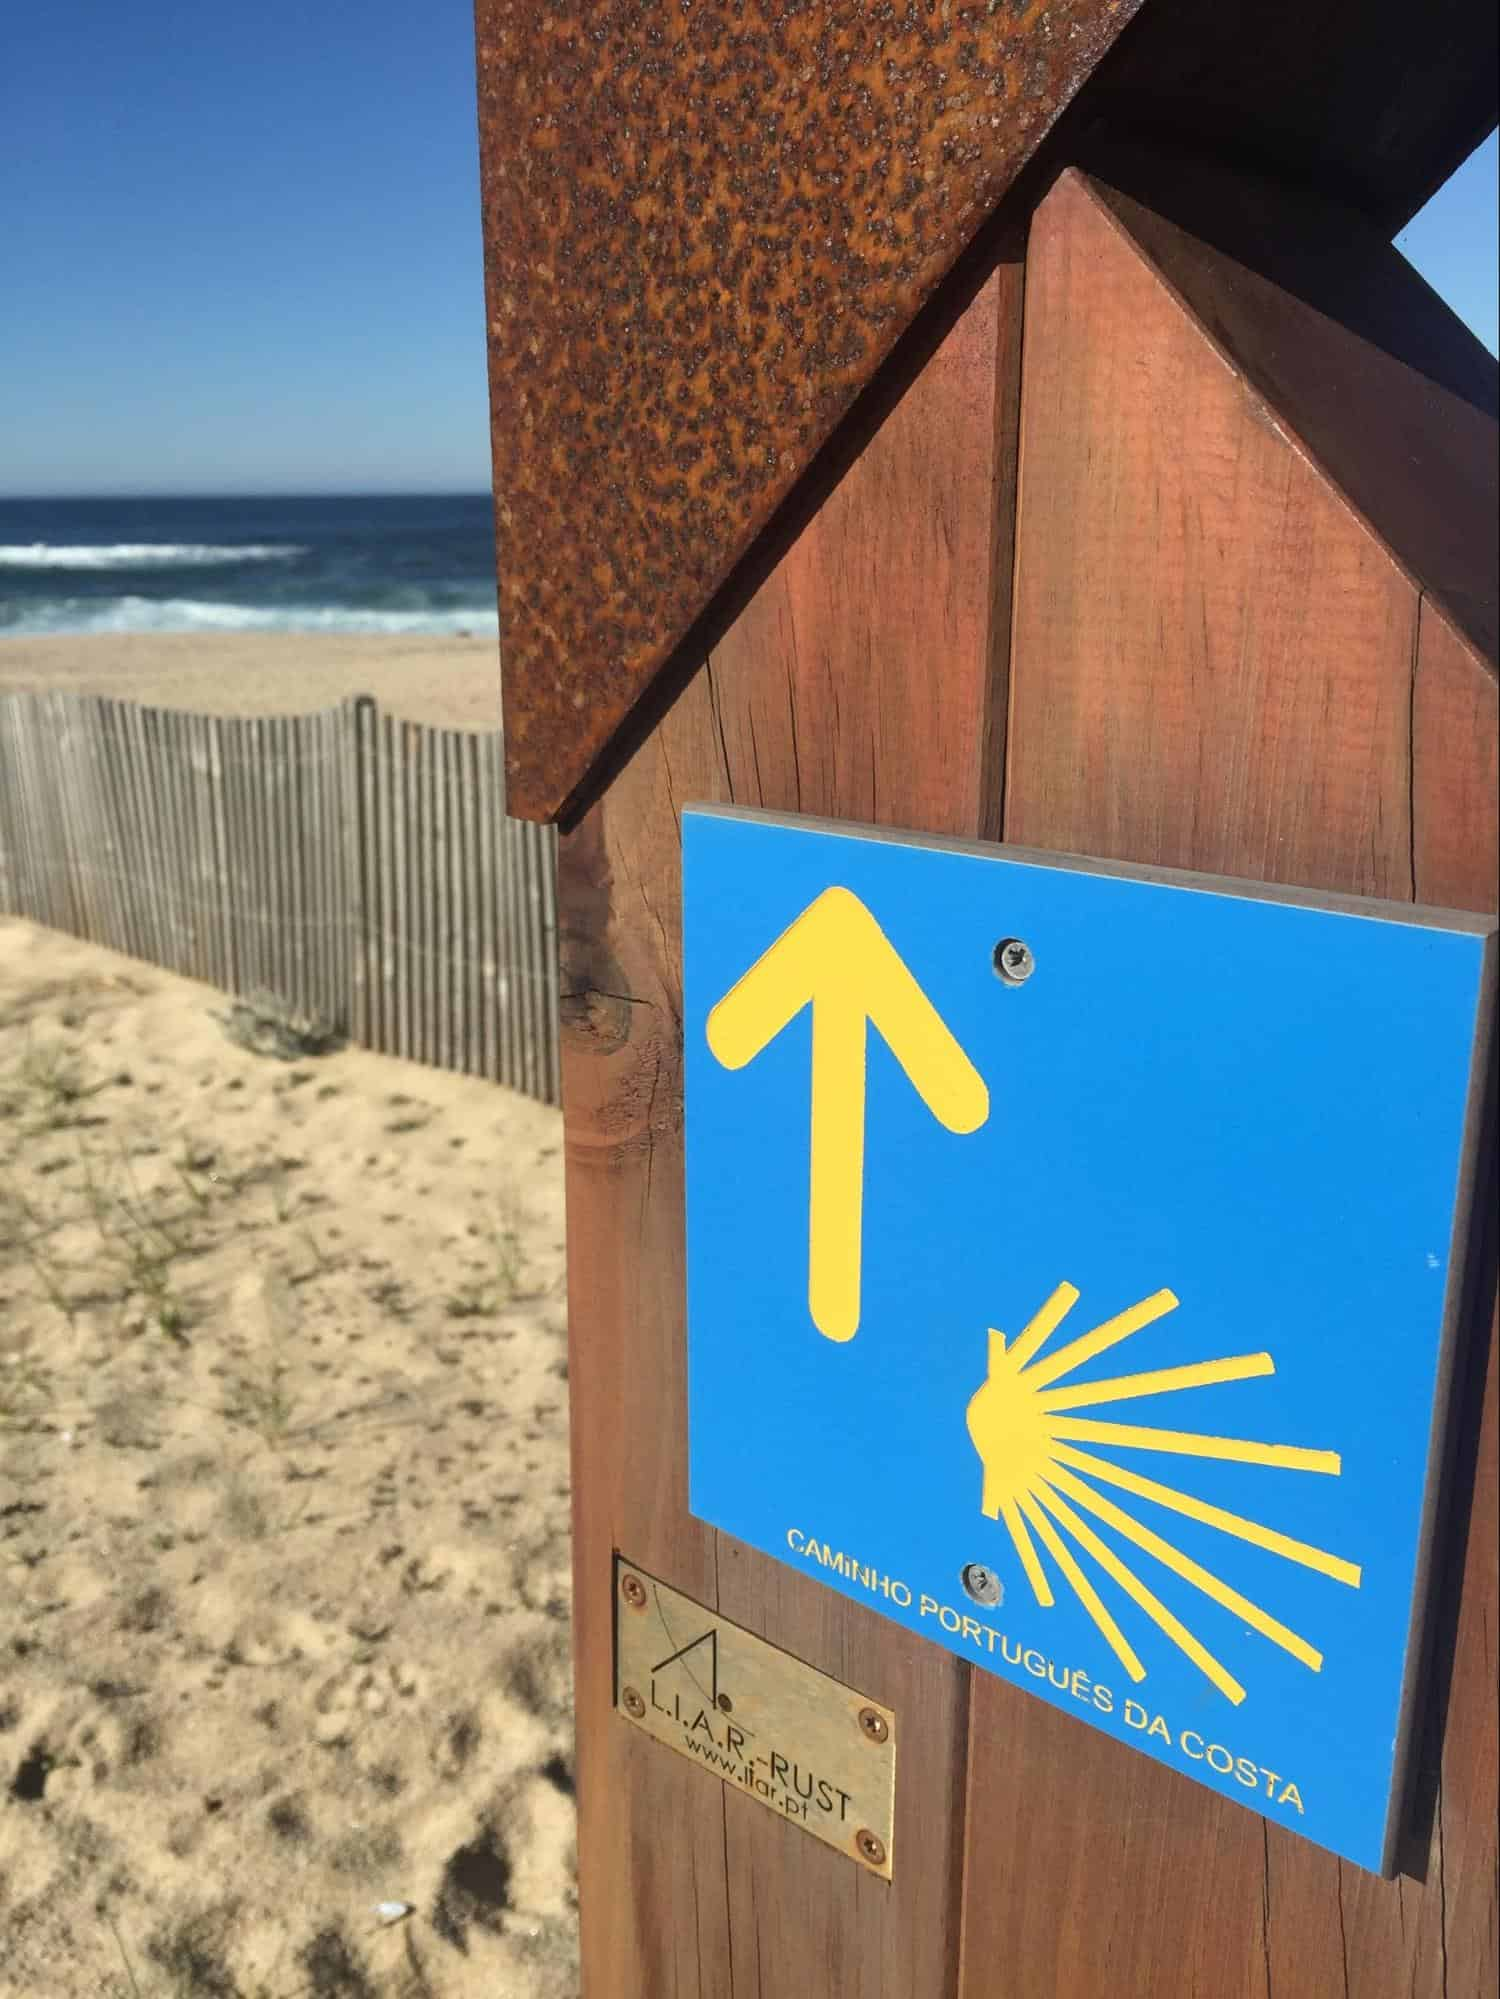 How Long is the Camino de Santiago?